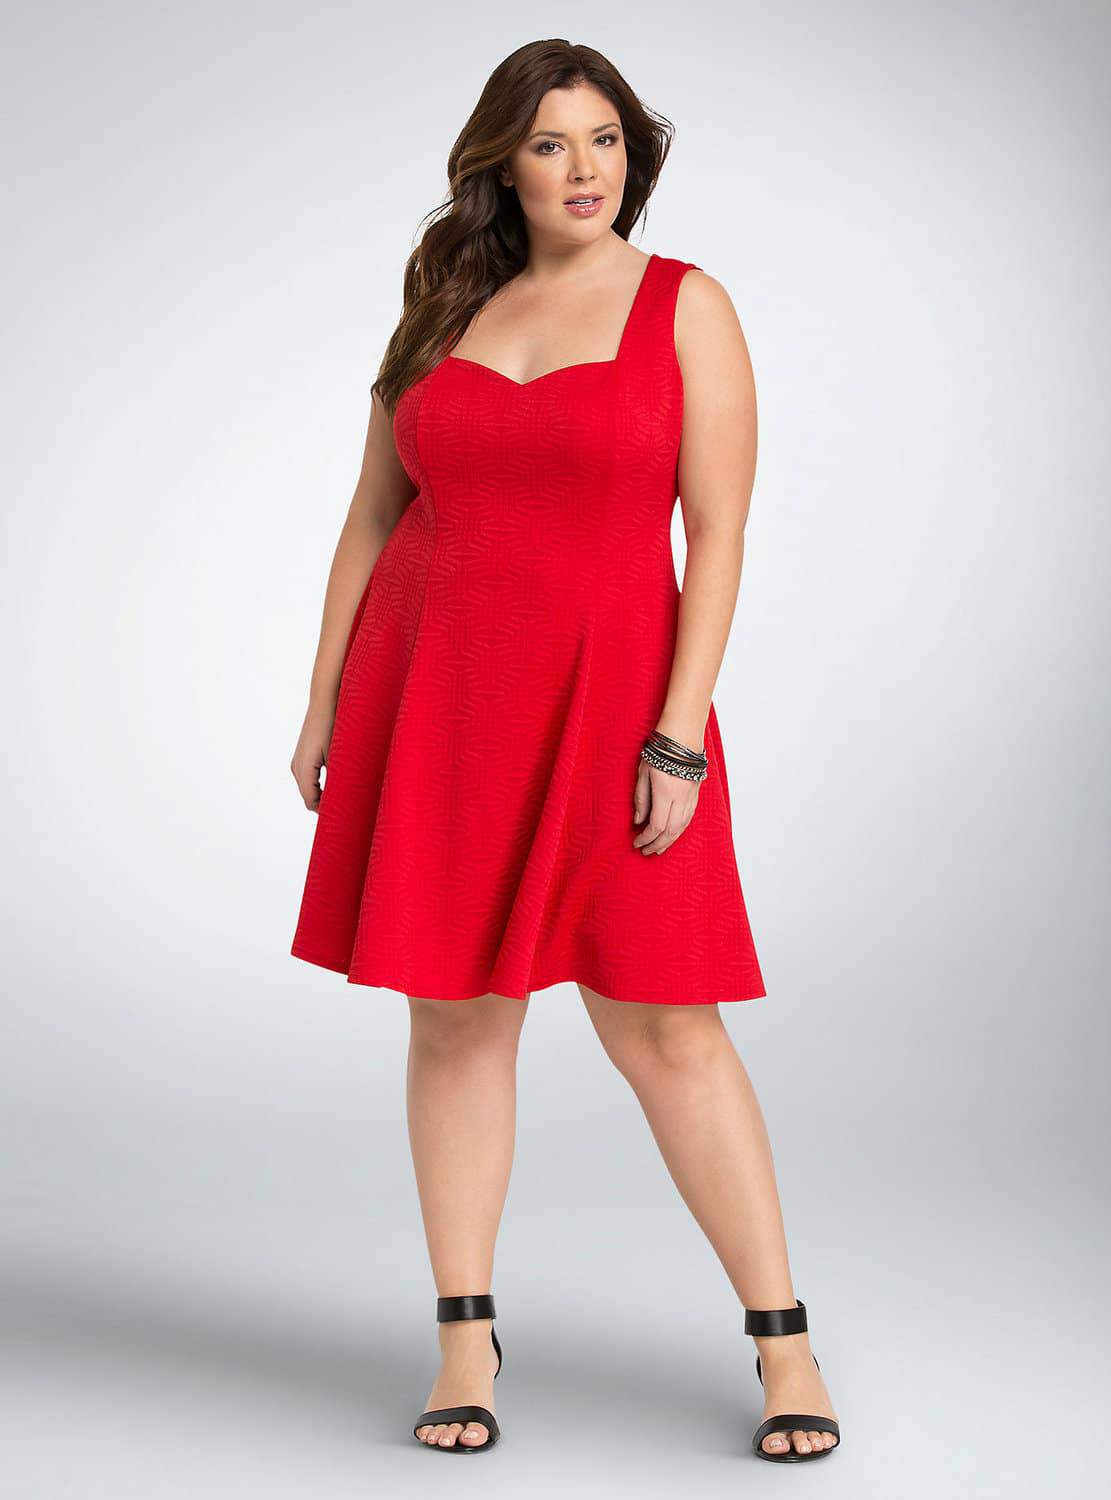 15 Must Rock Plus Size Dresses for that Valentine's Day Date!